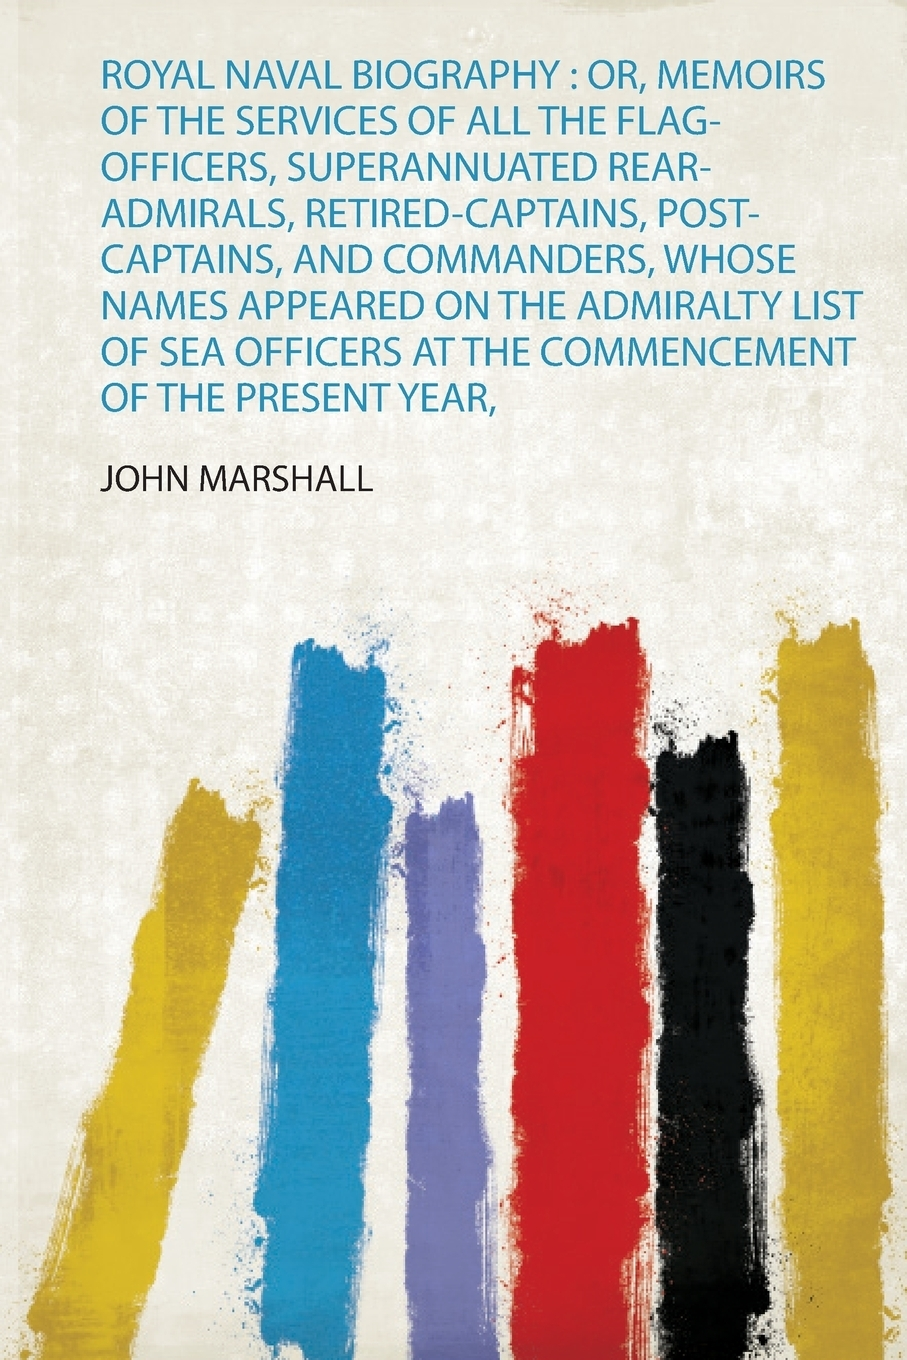 Royal Naval Biography. Or, Memoirs of the Services of All the Flag-Officers, Superannuated Rear-Admirals, Retired-Captains, Post-Captains, and Commanders, Whose Names Appeared on the Admiralty List of Sea Officers at the Commencement of the Presen... john joseph welch a text book of naval architecture for the use of officers of the royal navy